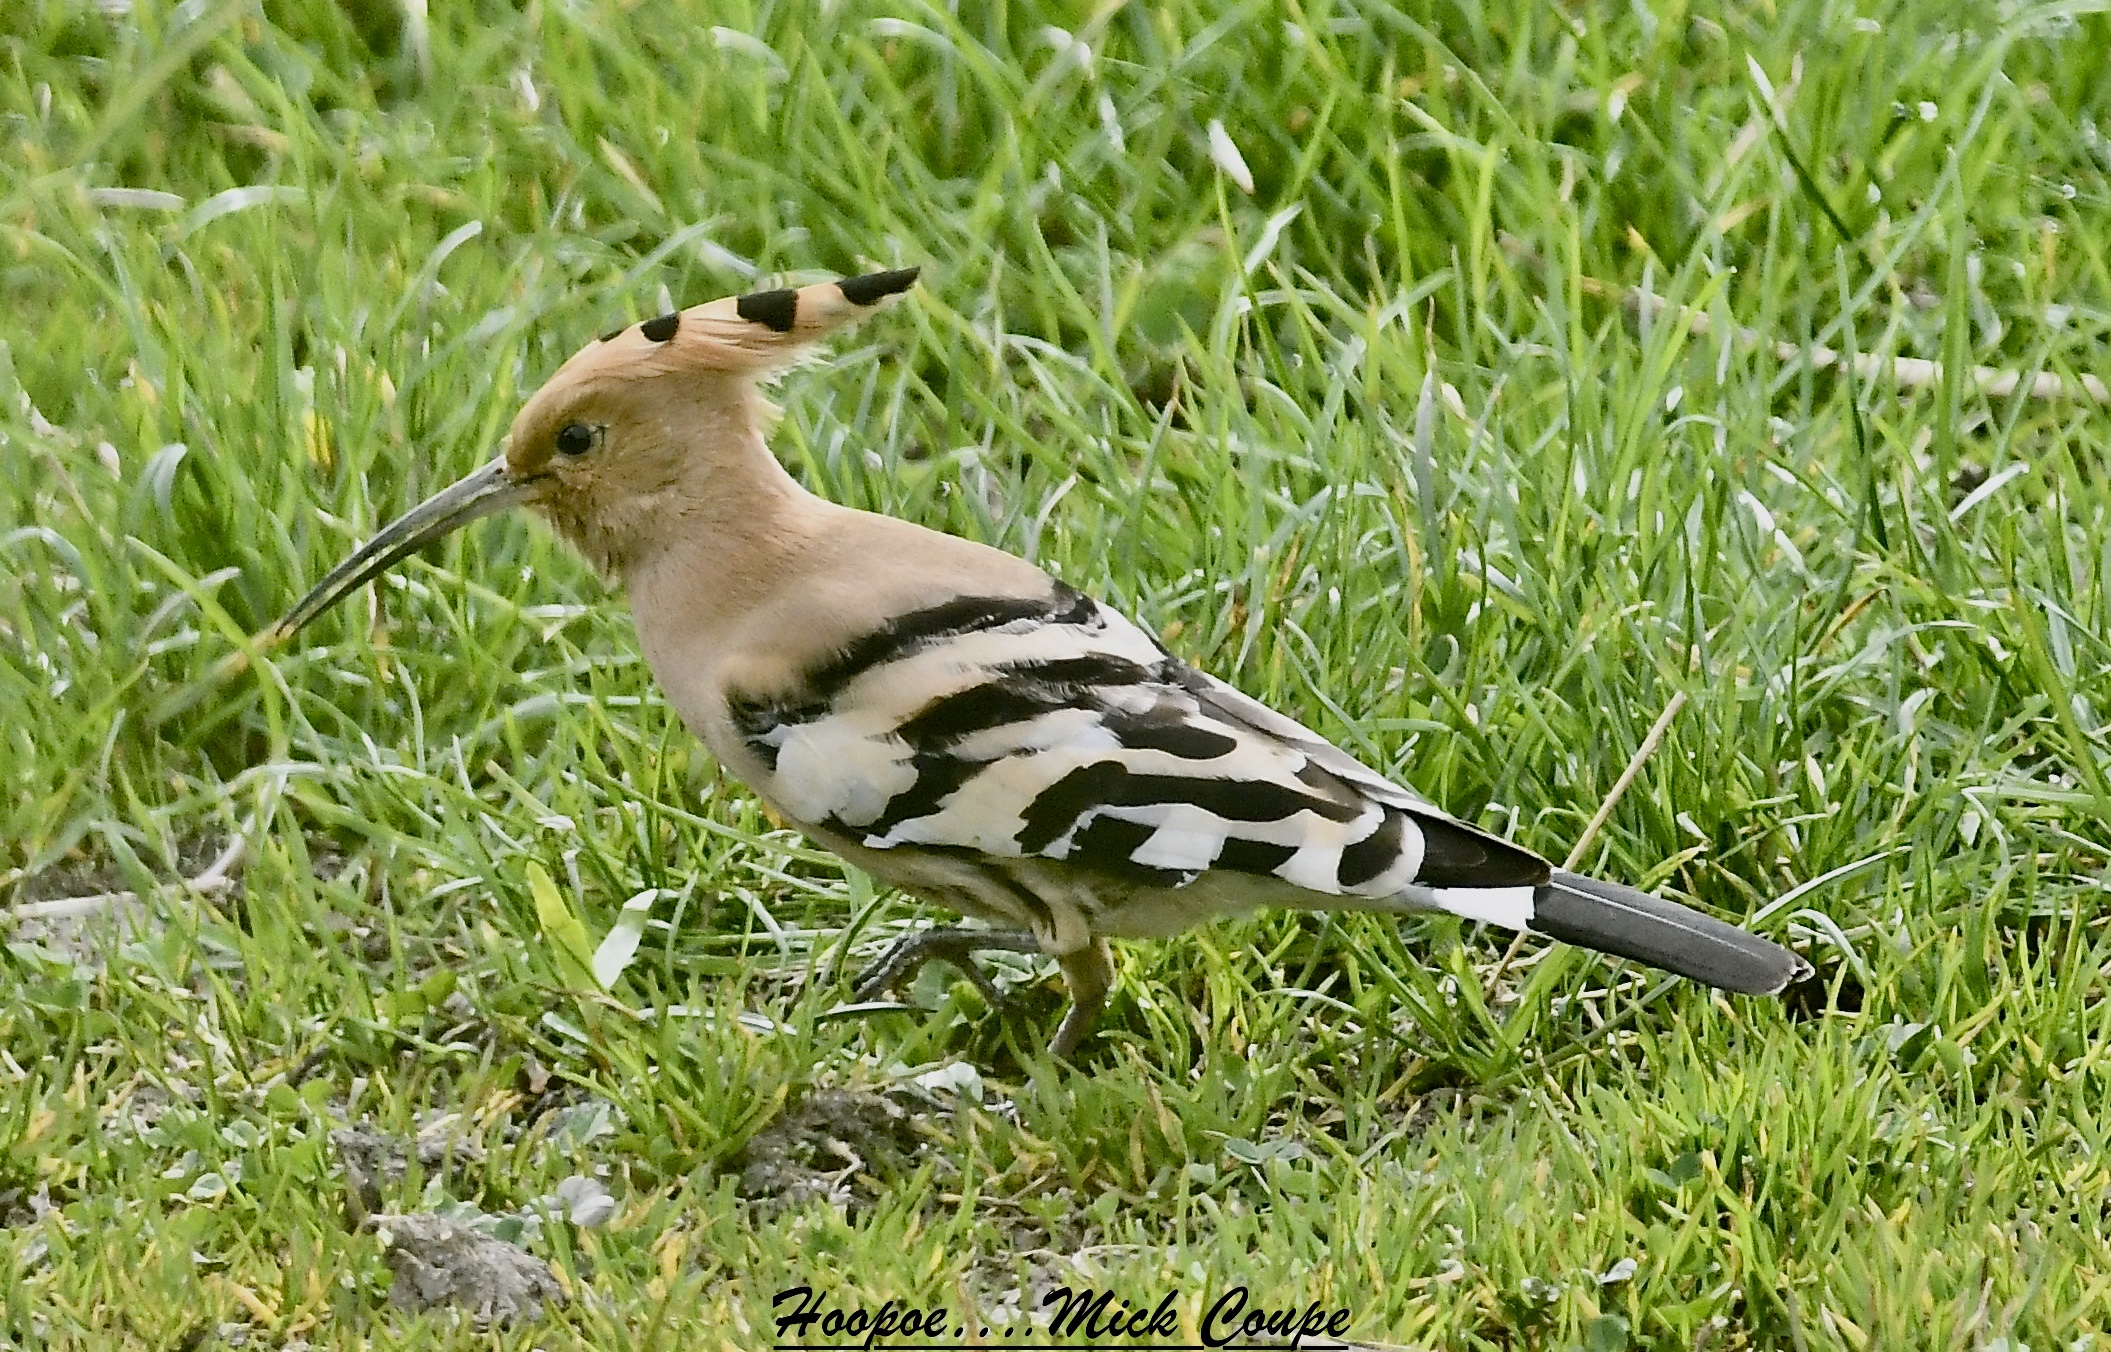 Hoopoe (Michael Coupe)